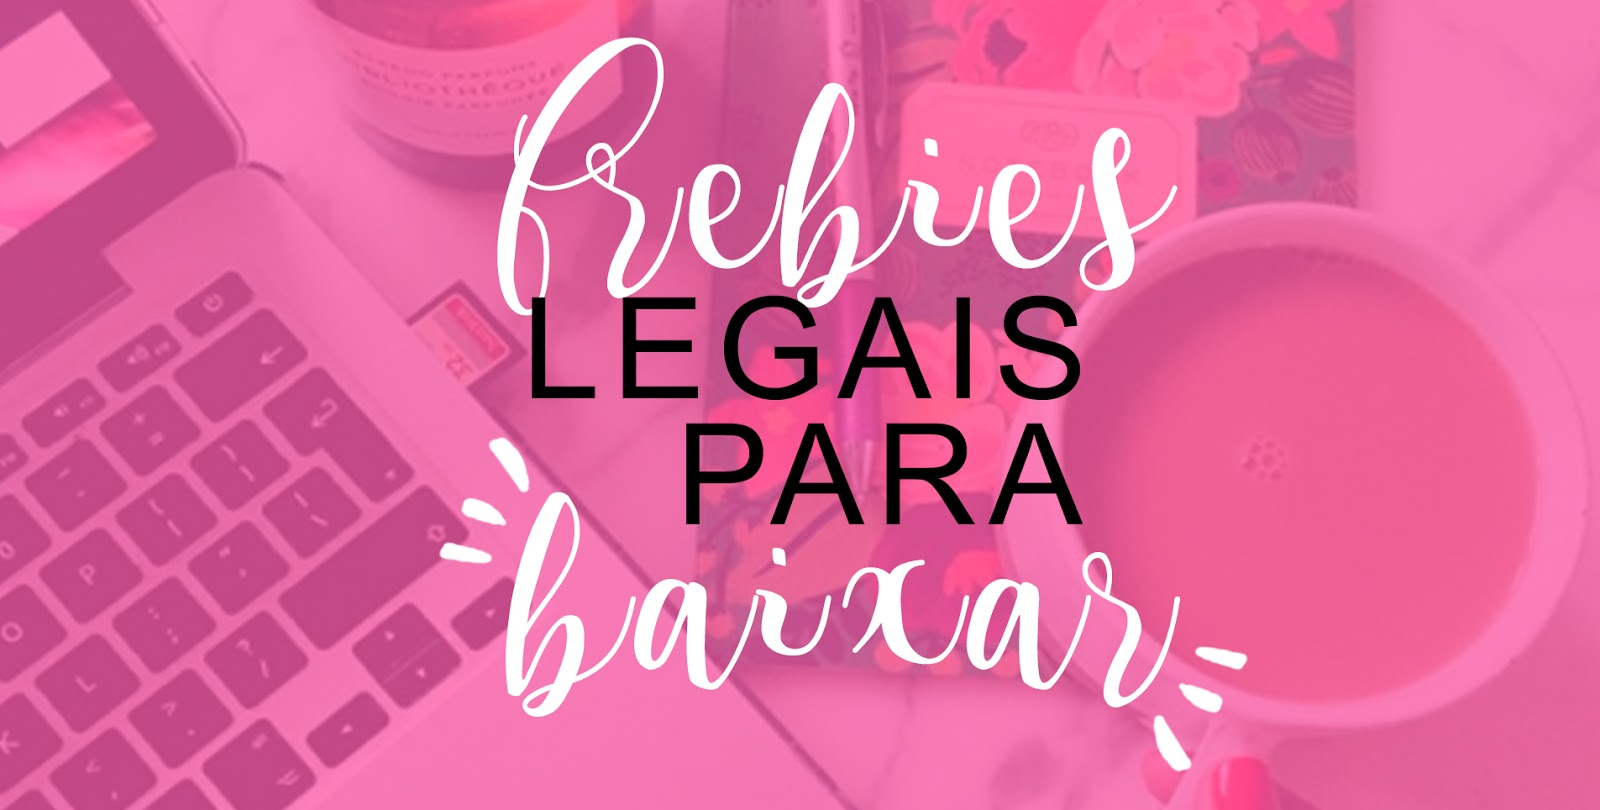 febries-para-baixar-blog-layouts-free-blogger-wordpress-fontes-free-lipstickandpolaroids